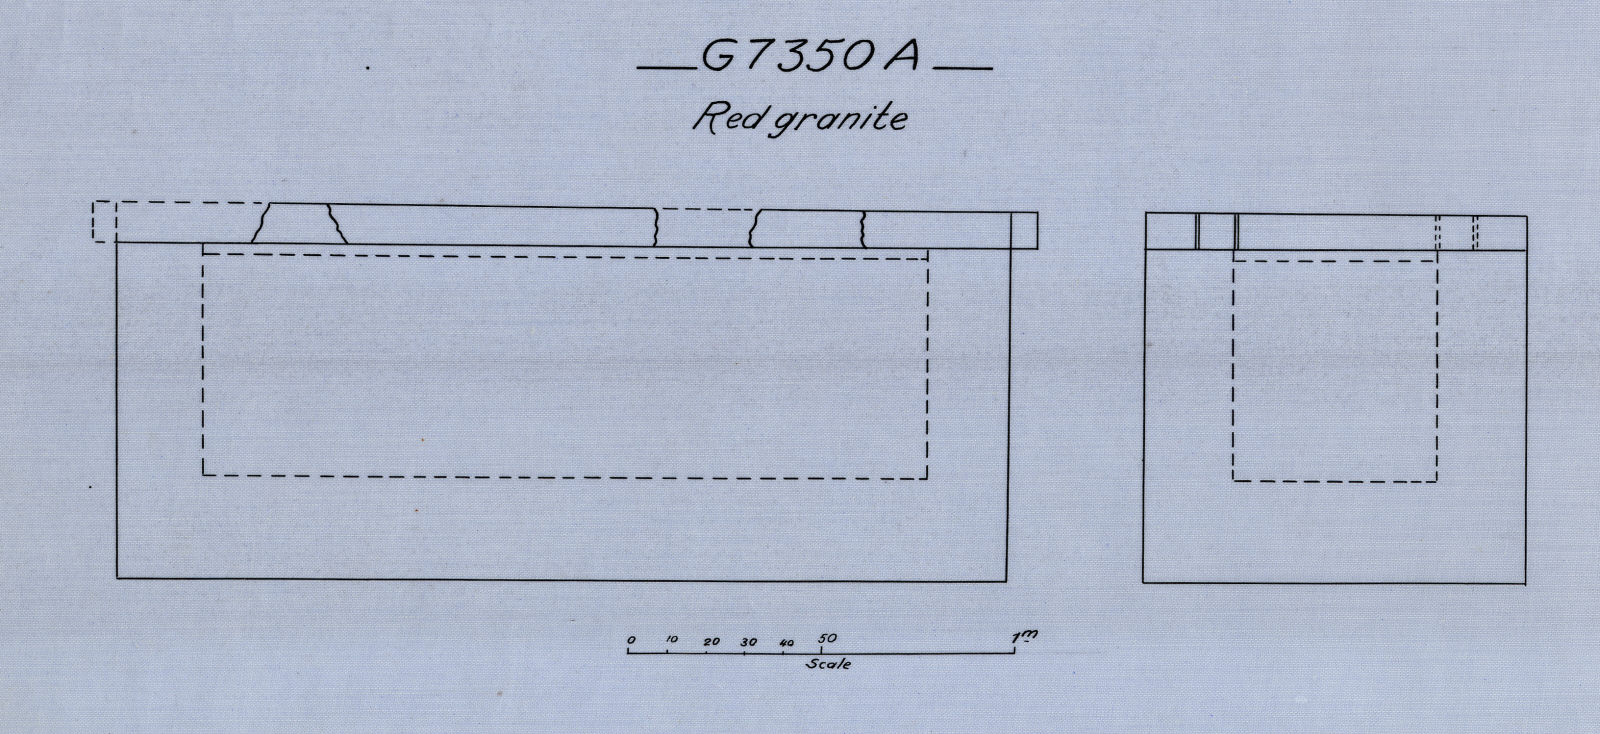 Drawings: G 7350, Shaft A: coffin, red granite